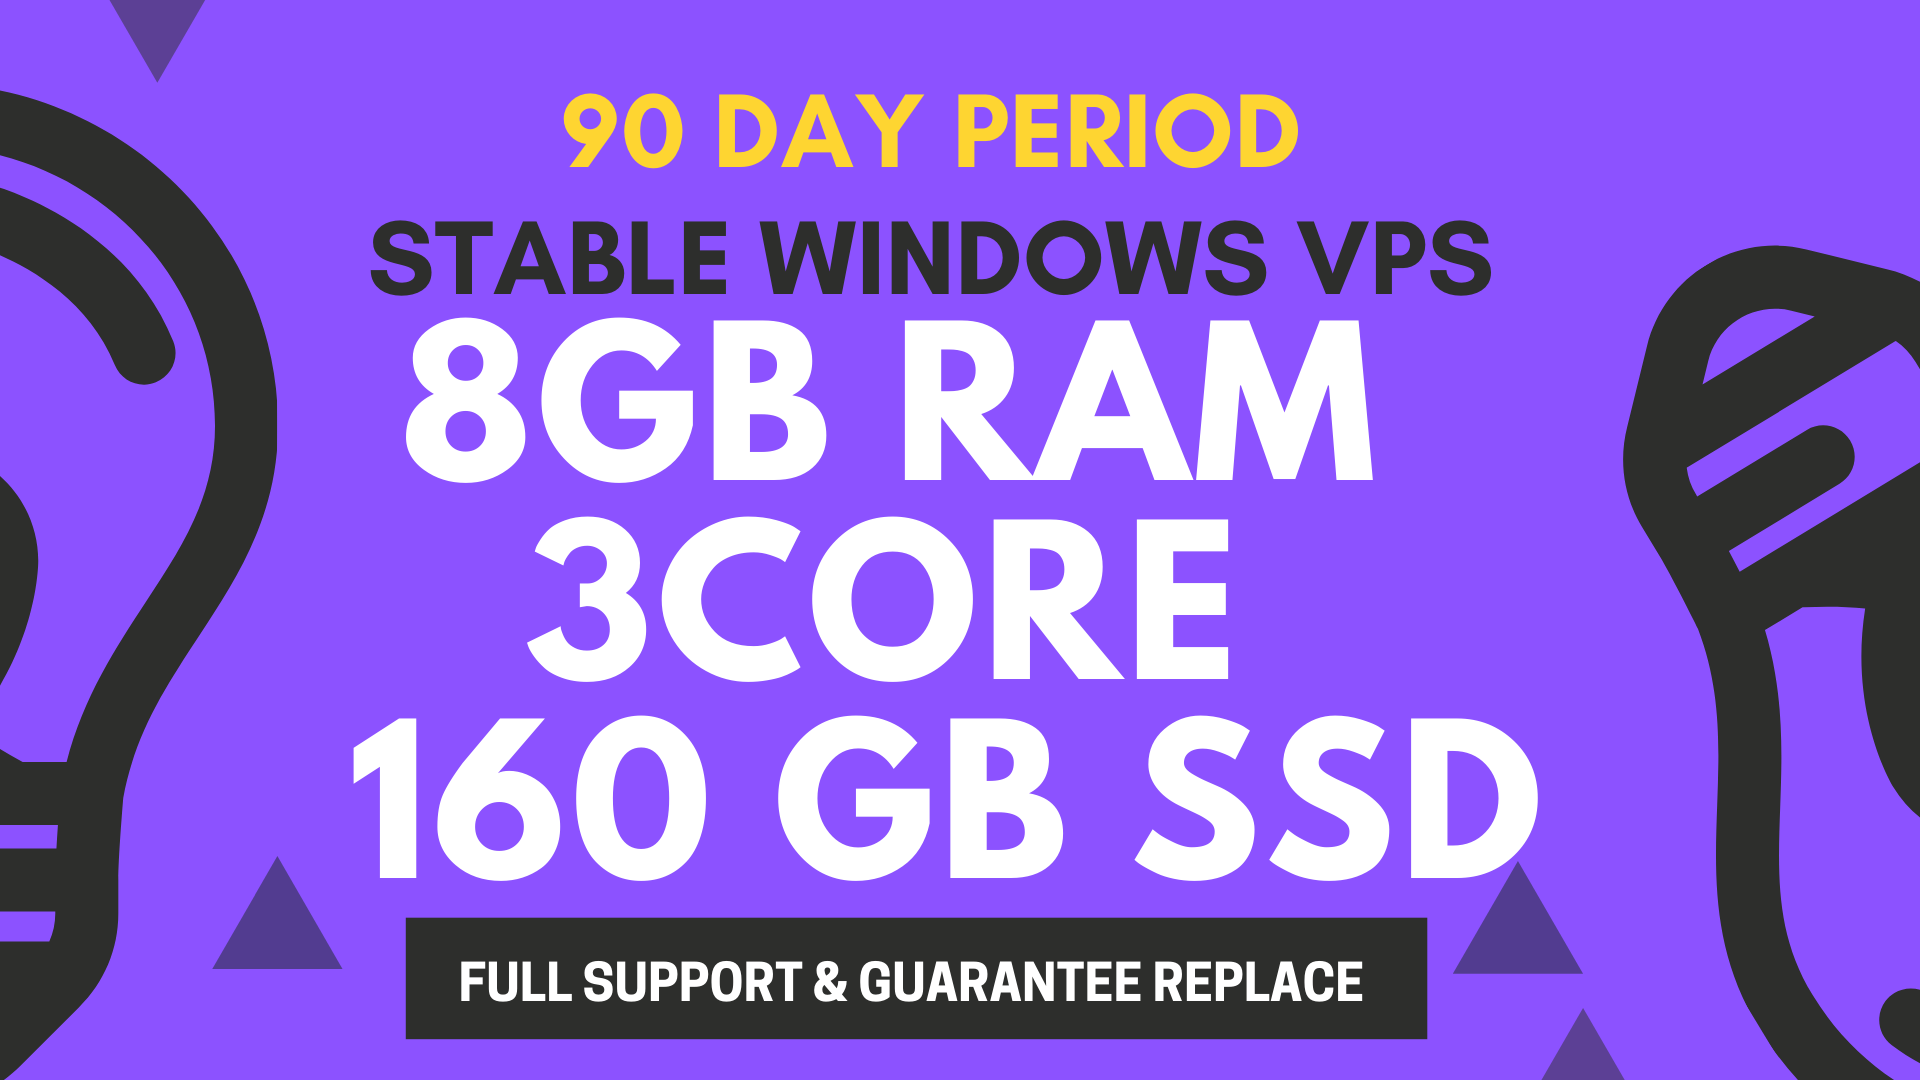 3 MONTH Of Use STABLE WINDOWS VPS 8GB RAM 3CORE 160GB